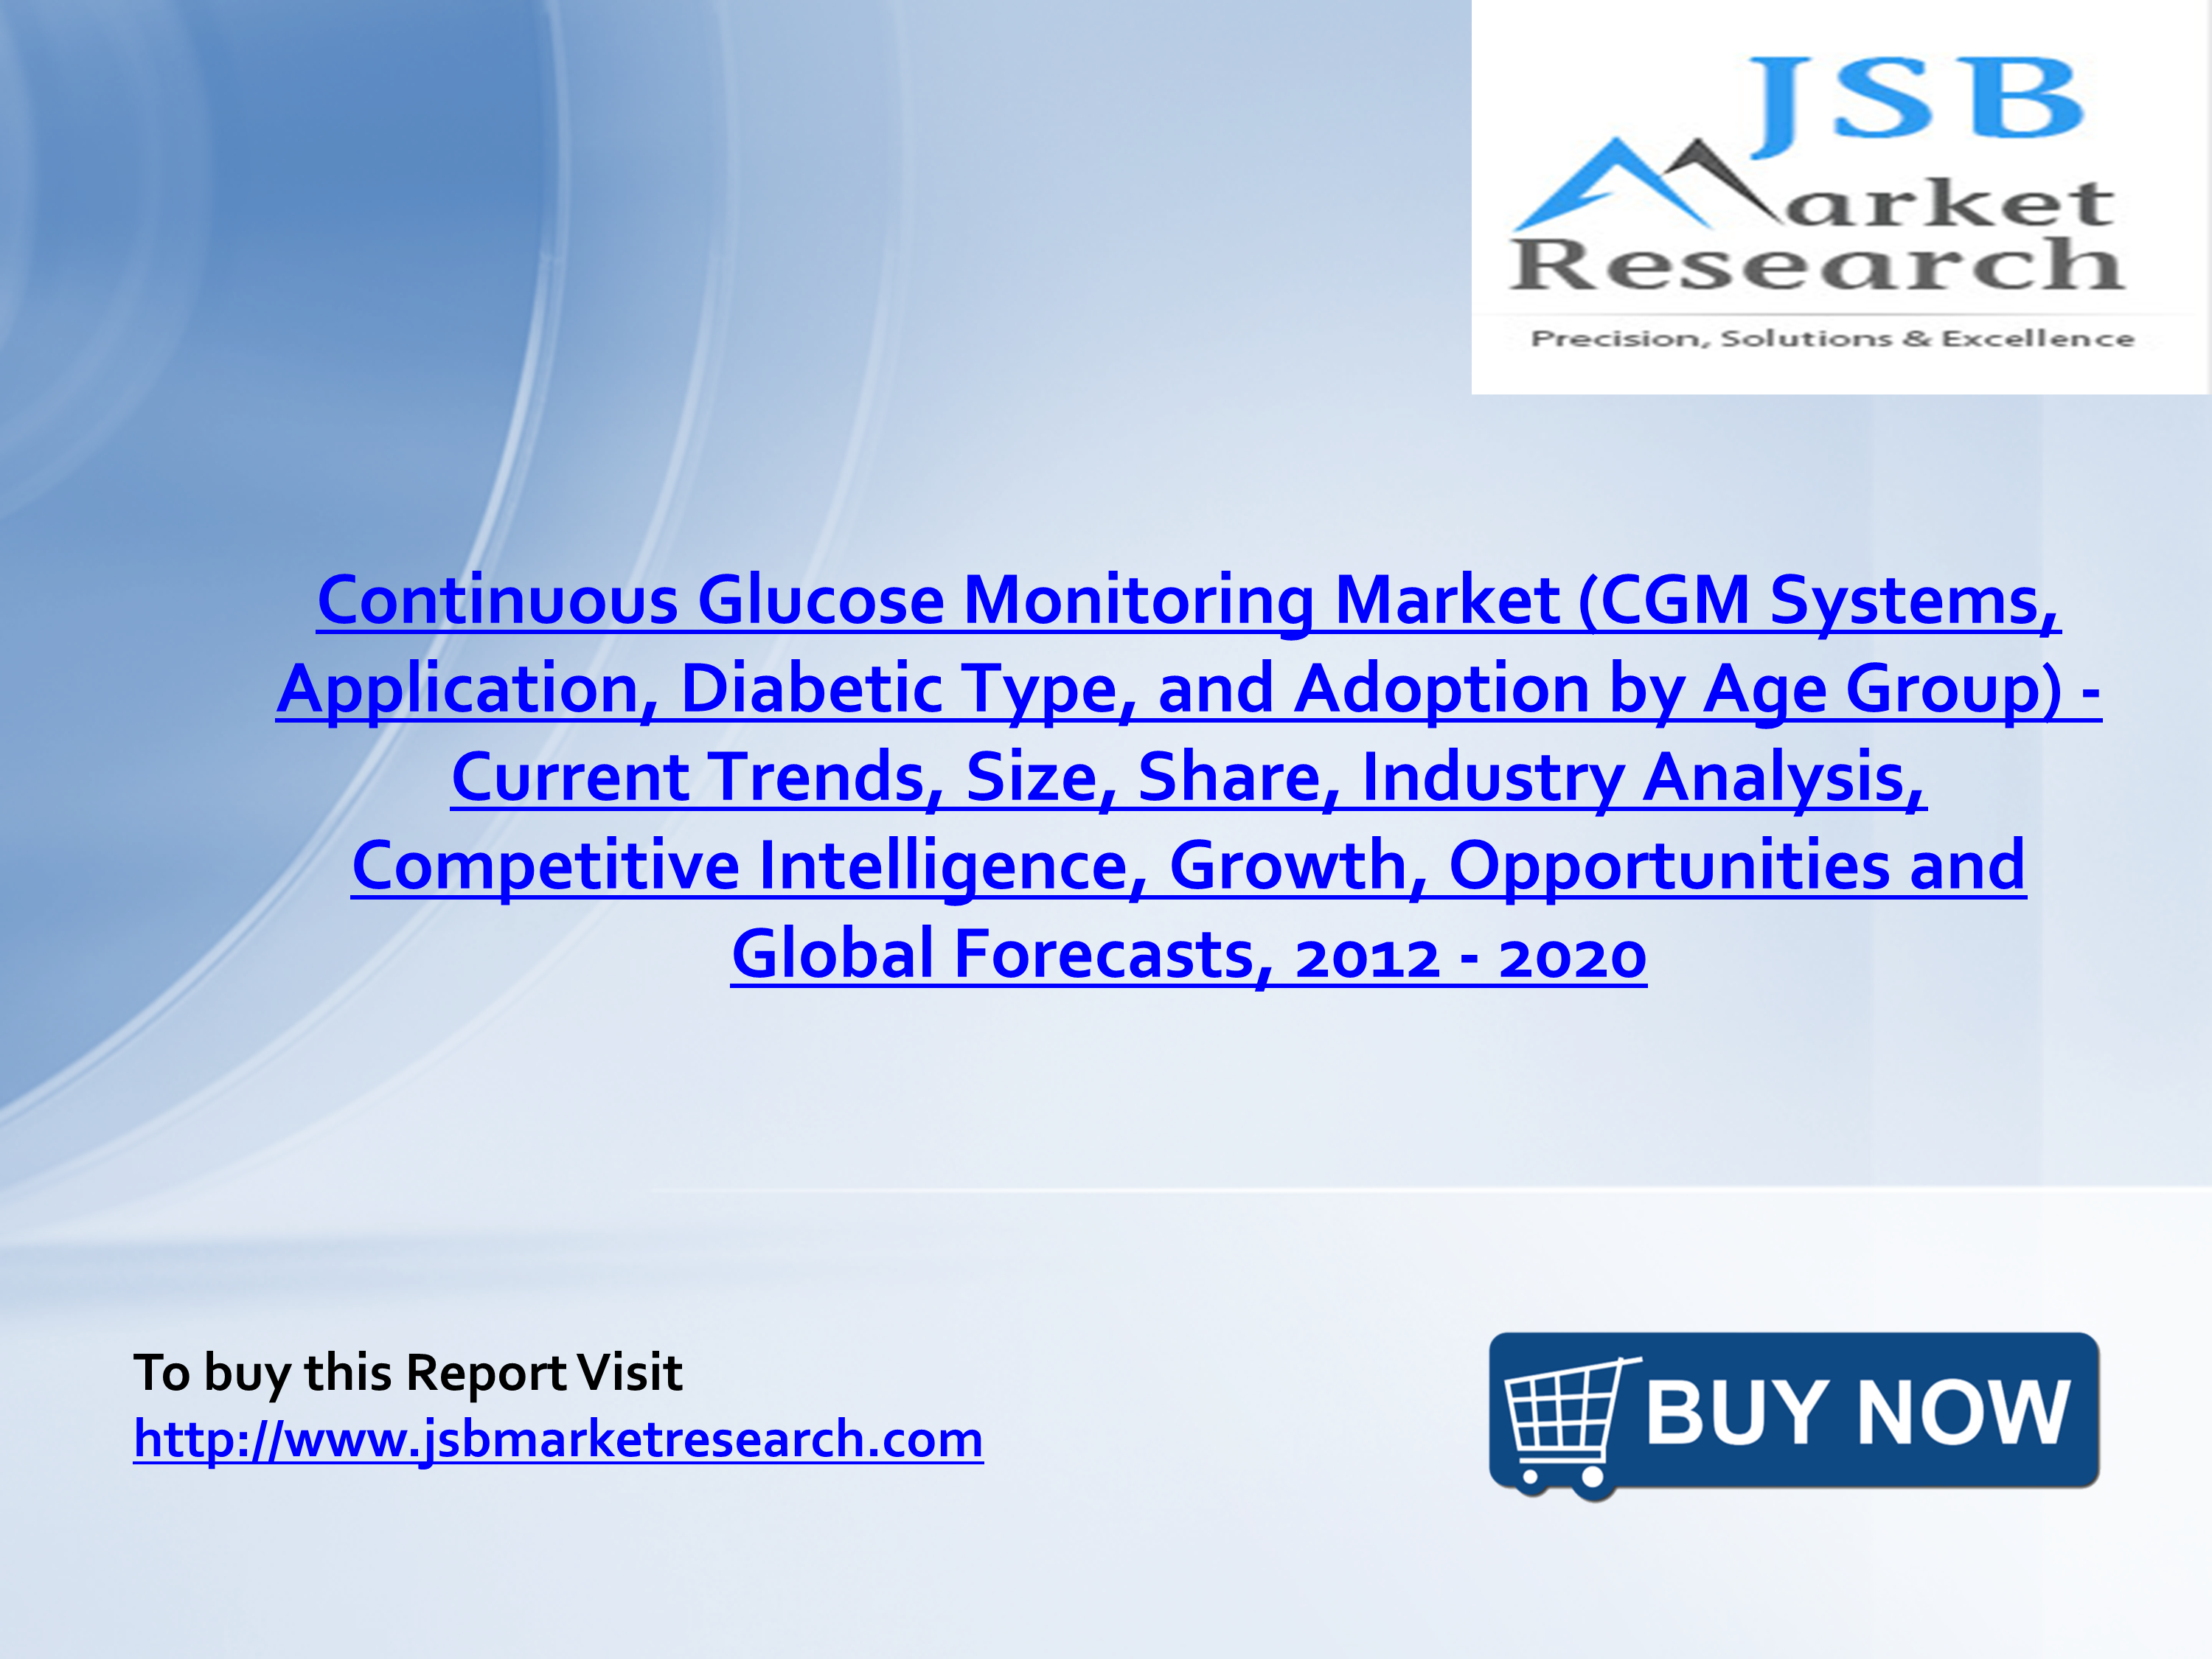 continuous market research Marketing research is not only continuous but also a scientific and systematic process it is scientific and systematic because it has well-defined procedures it is a process of generating and evaluating data, and then refining it.